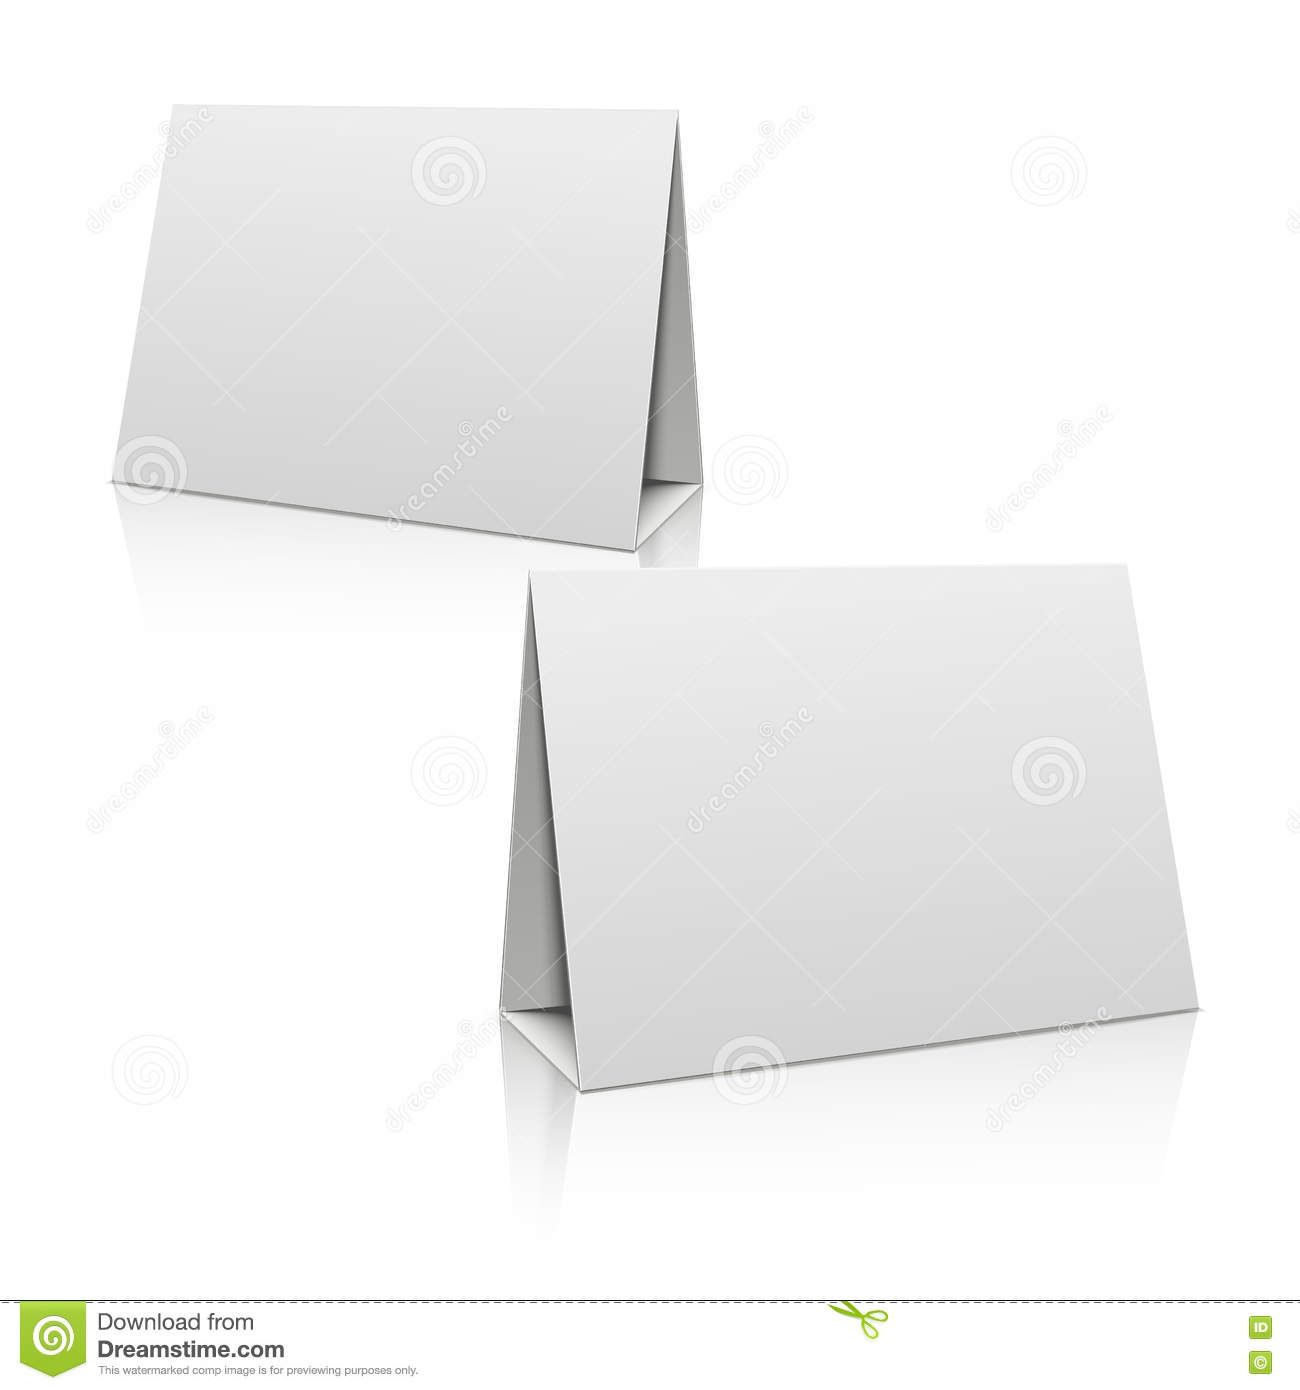 Blank White Paper Stand Table Holder Card 3d Vector Design In Card Stand Template Business Professional Templates Paper Stand Card Template Design Template